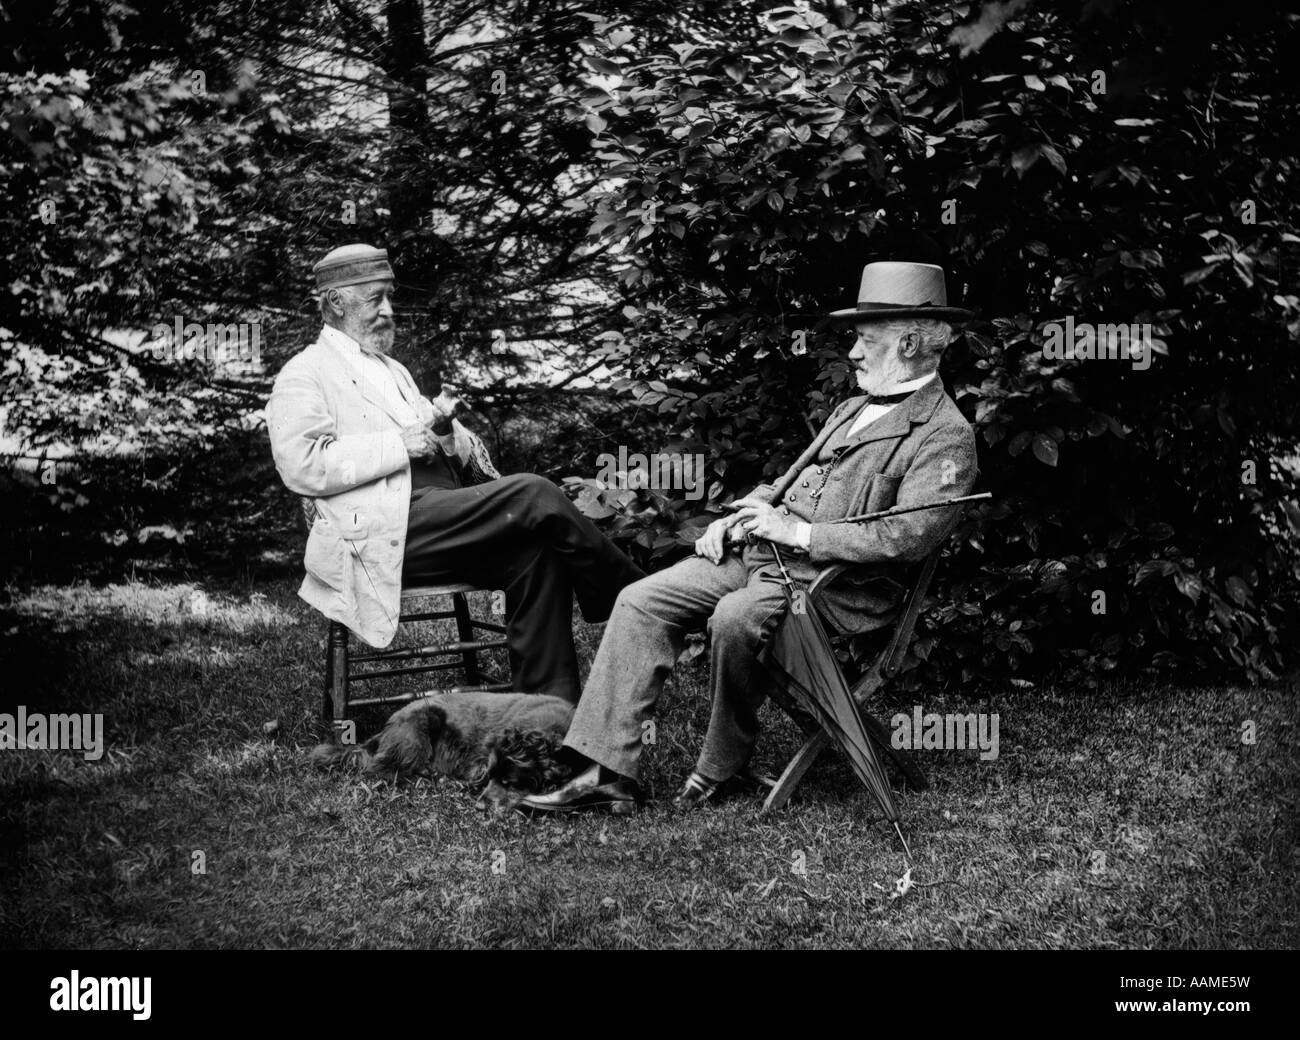 TURN OF THE CENTURY TWO MEN SITTING OUTSIDE IN CHAIRS AMONG TREES SMOKING CIGARS TALKING DOG LAYING AT THEIR FEET - Stock Image